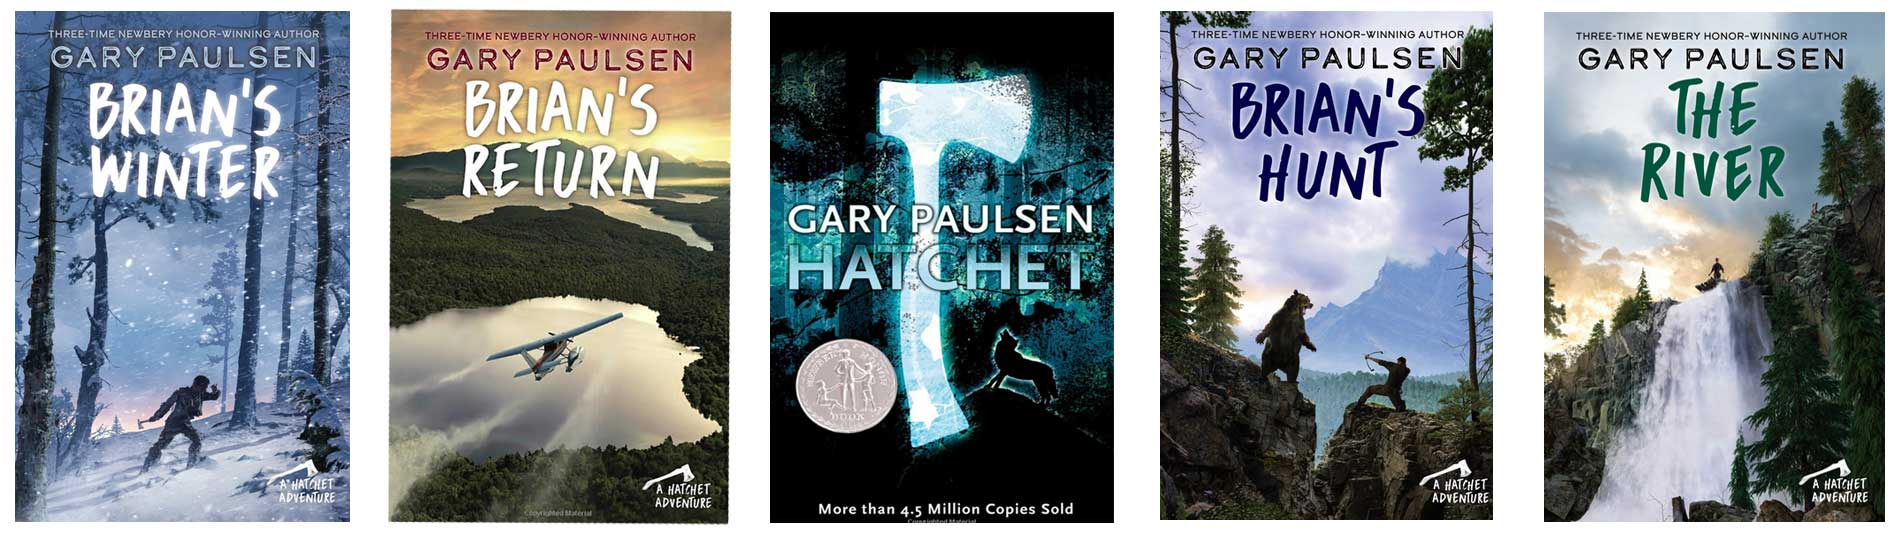 Hatchet And Other Books In Gary Paulsen S The Brian Saga